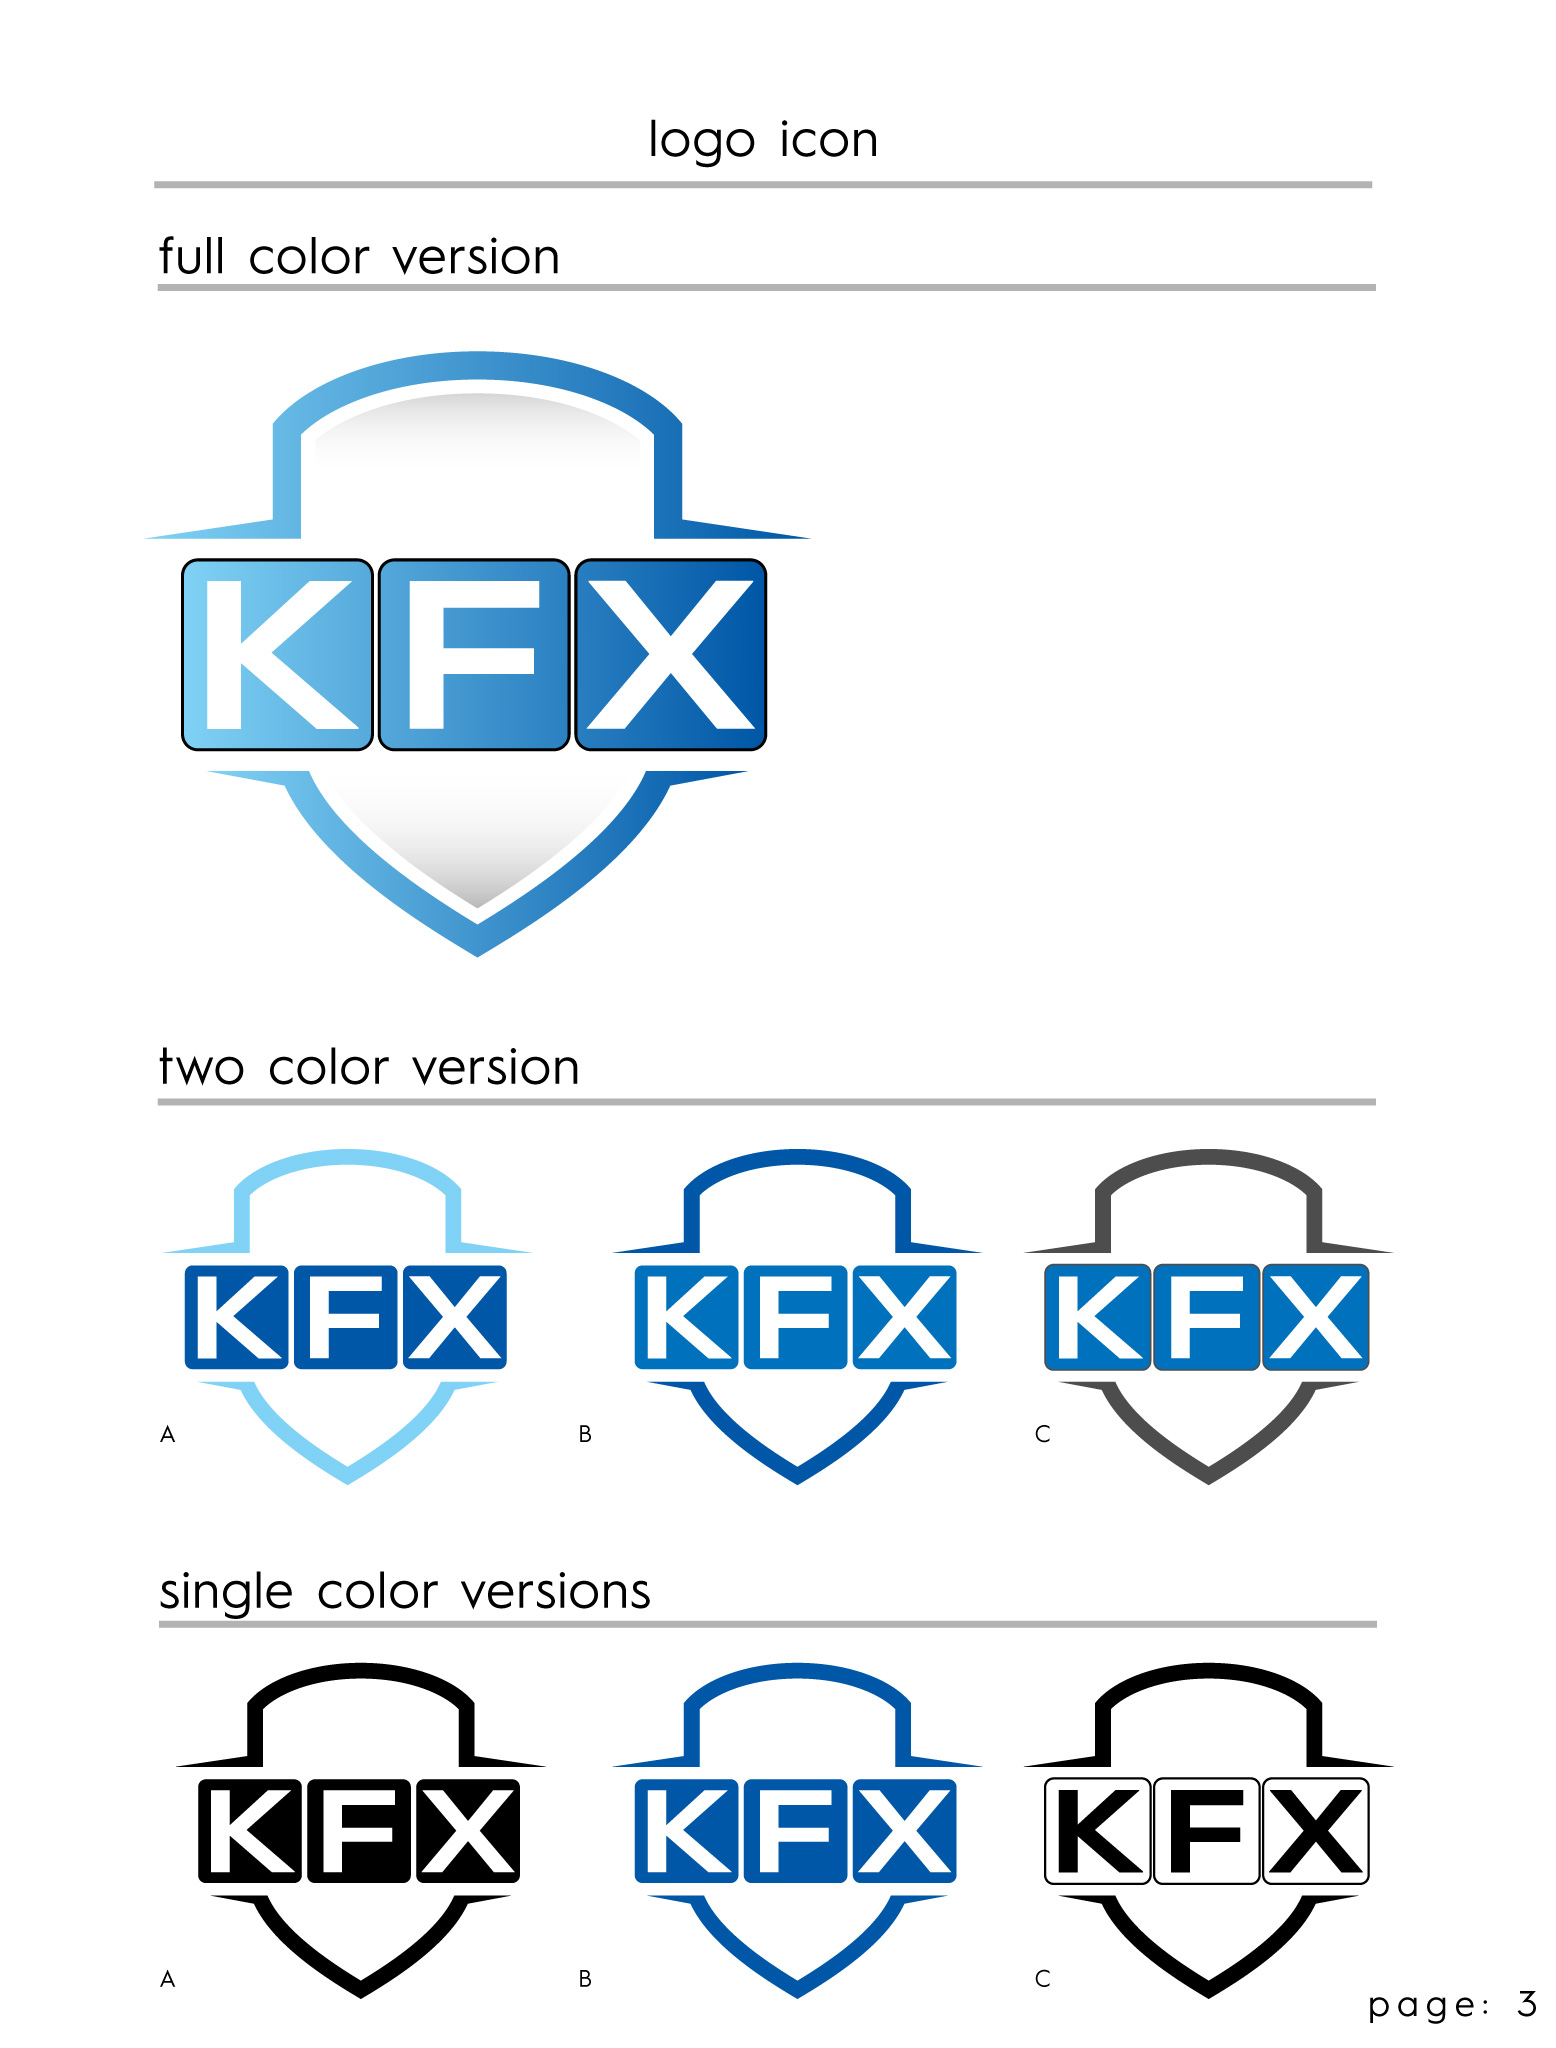 KNOX_file_secure_PAGE_3